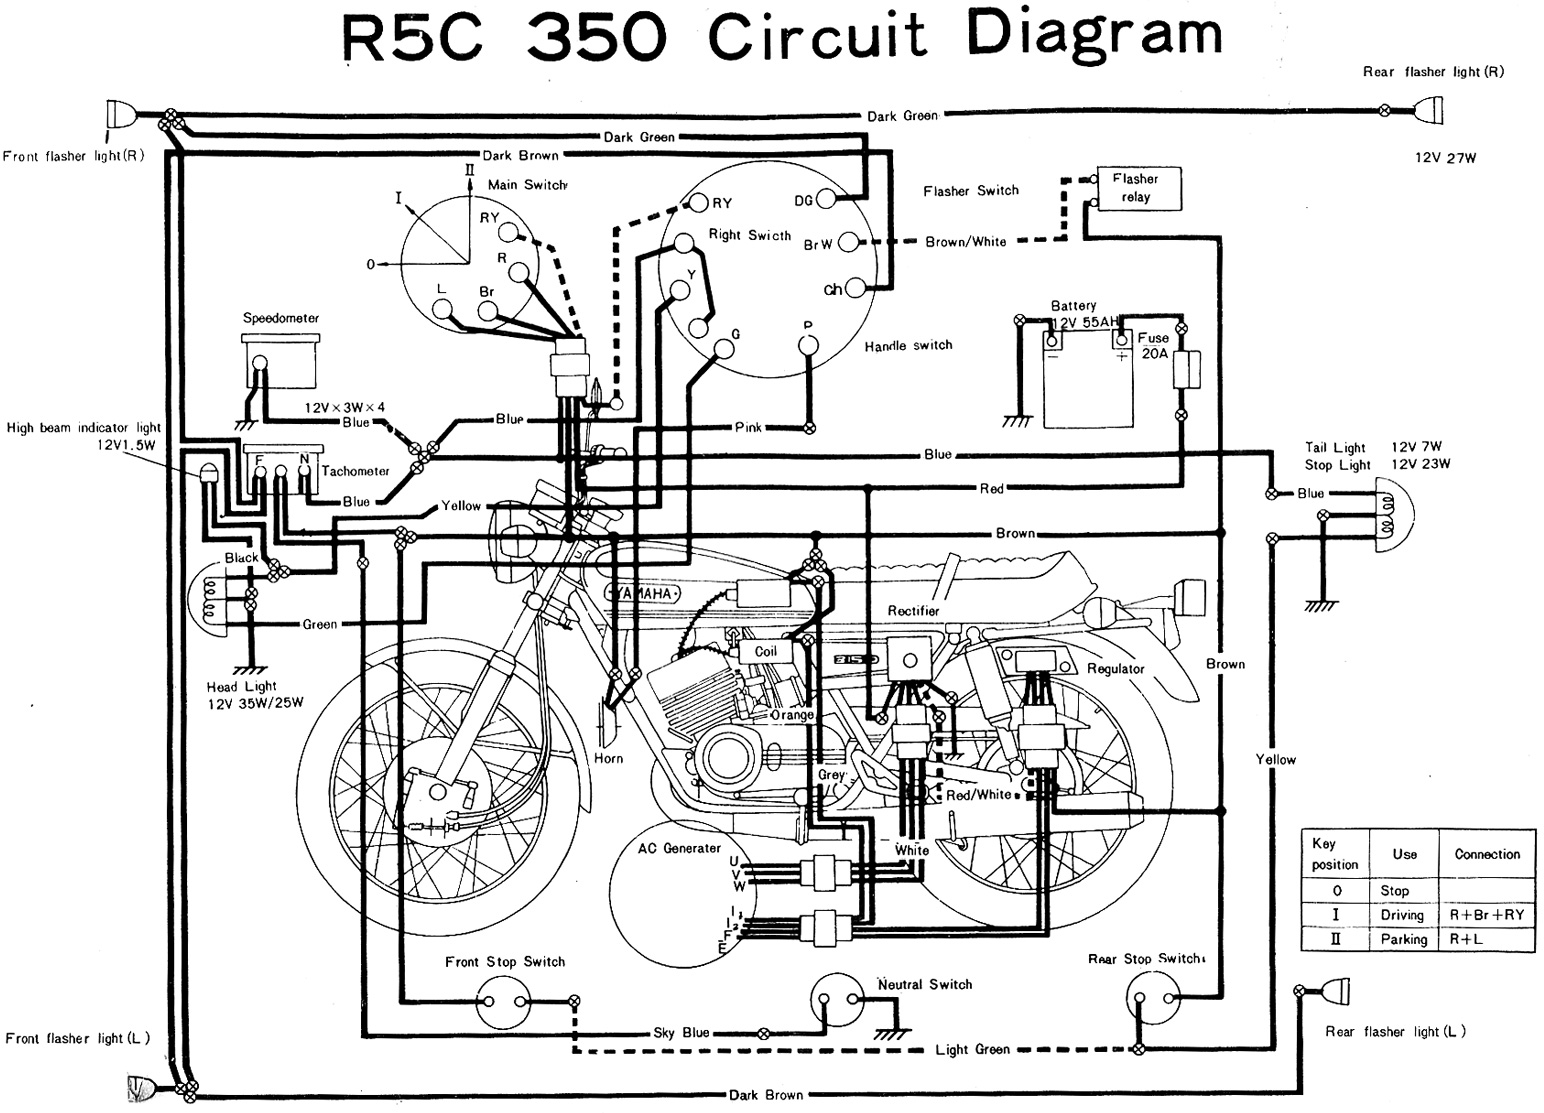 yamaha motor diagrams wiring diagram site yamaha motor diagrams simple wiring diagram yamaha drive battery diagram yamaha motor diagrams